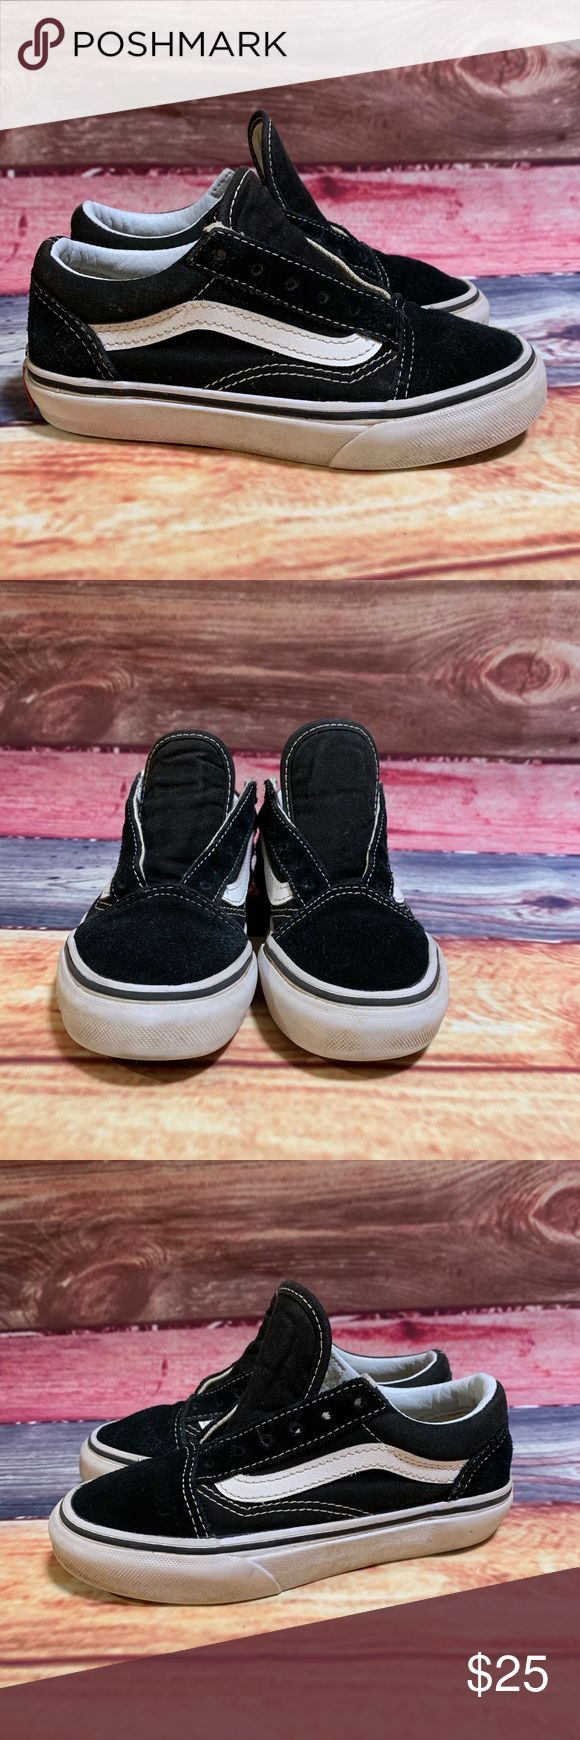 Vans Boys Youth Size 13 Old School Skate Shoe Vans Boys Youth Size 13 Old School Skate Shoe Pre-Owned Awesome Laces Not Inc. Condition is Pre-owned.  …